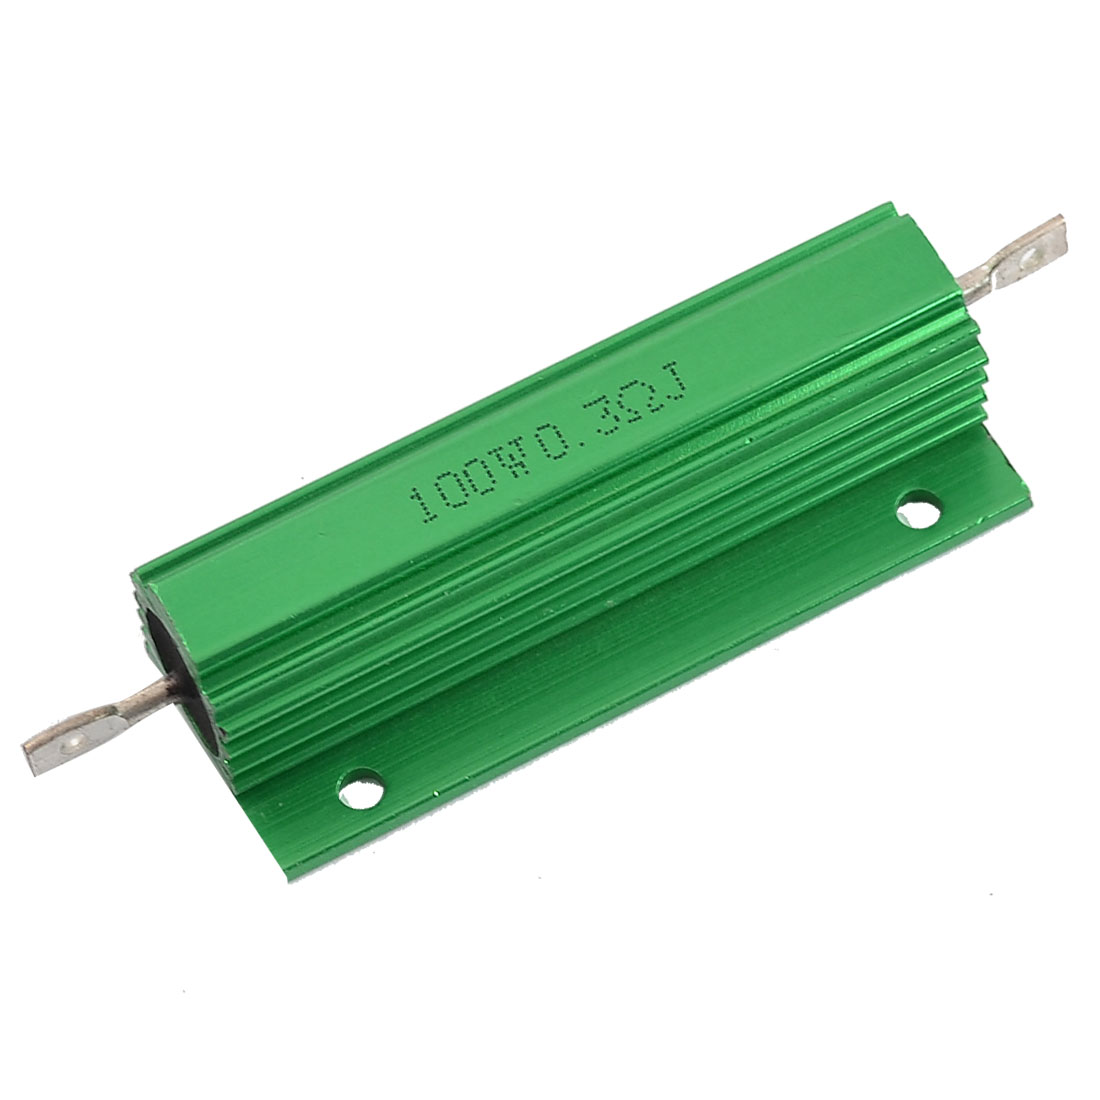 Aluminum Housed Chassis Mounted 100W Watt 0.3 Ohm 5% Wirewound Resistor